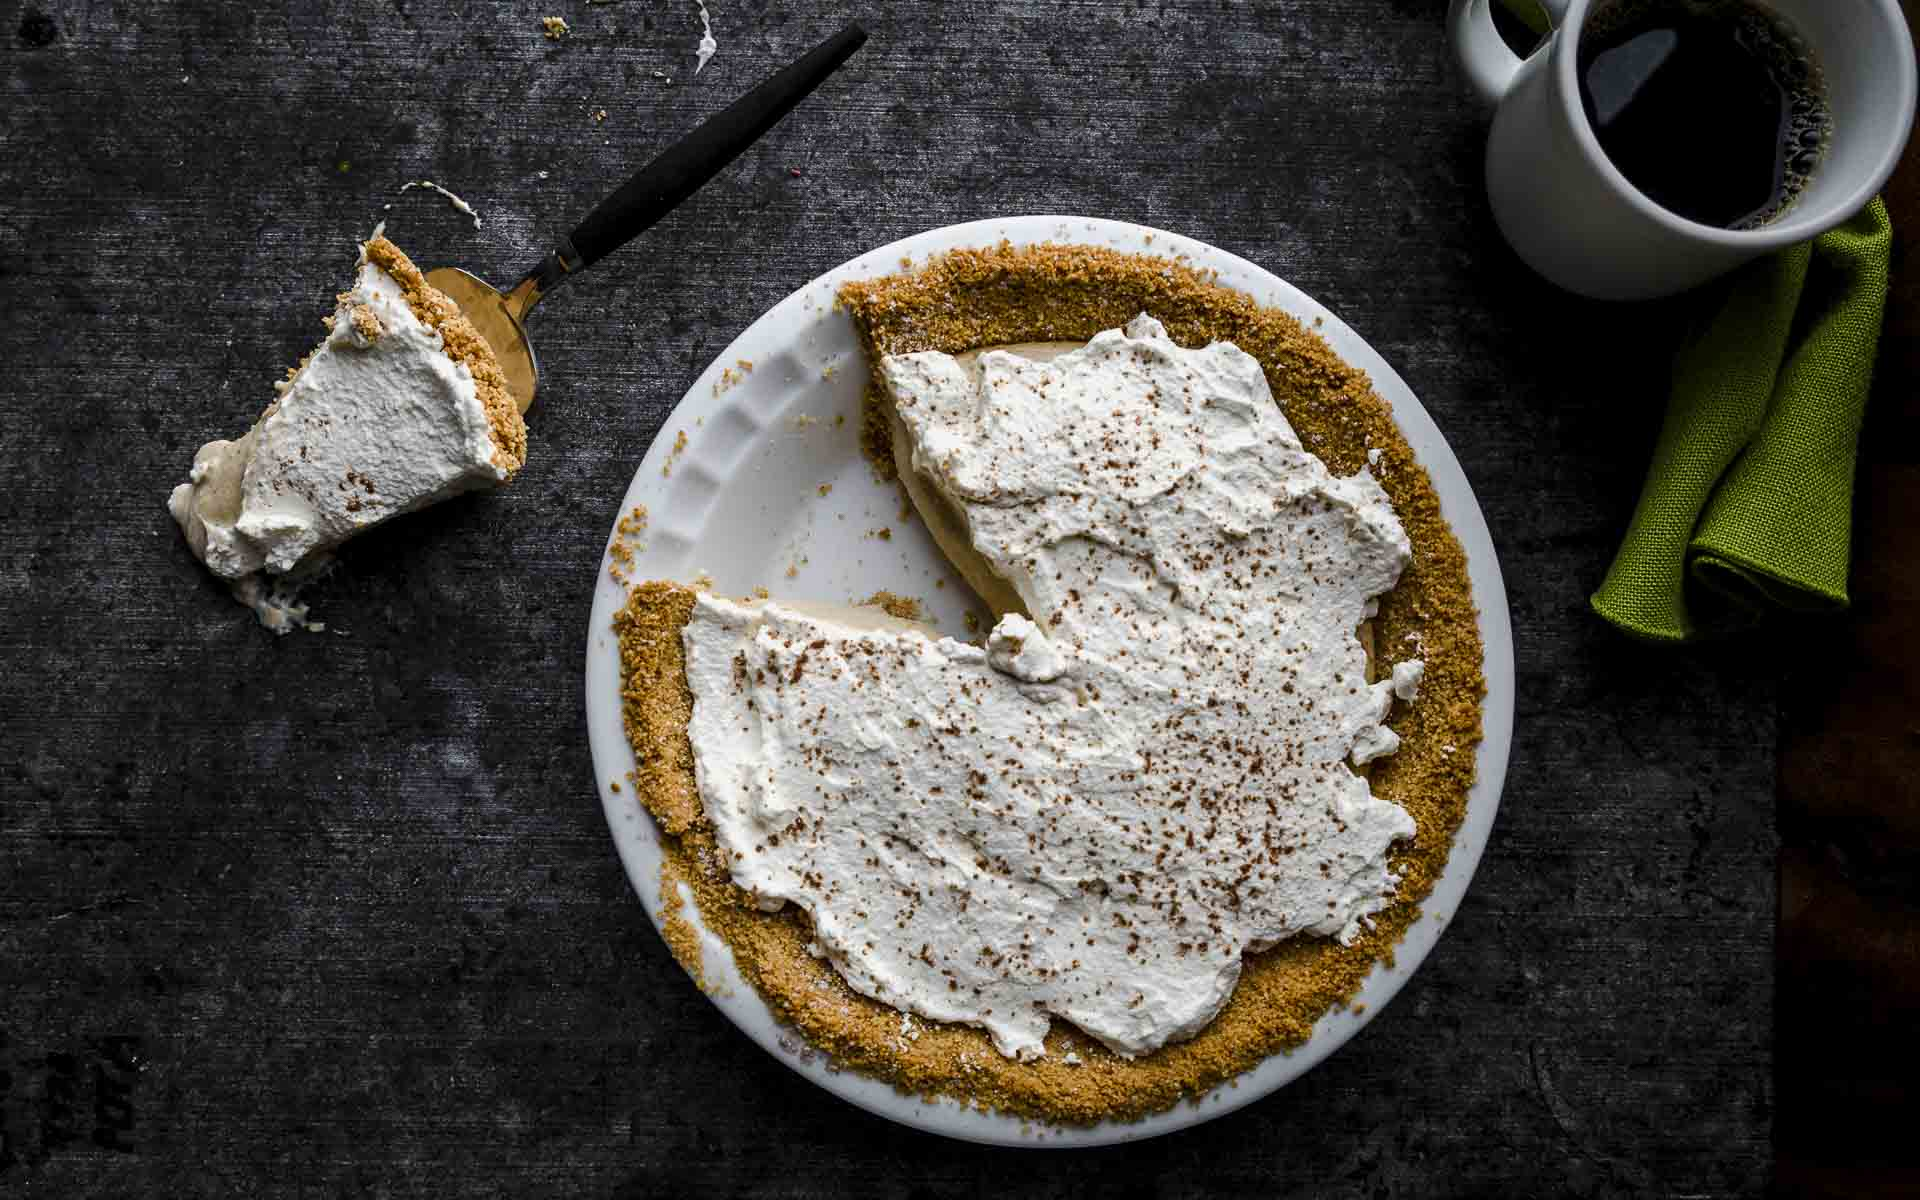 Irish Cream Pie topped with real whipped cream from above